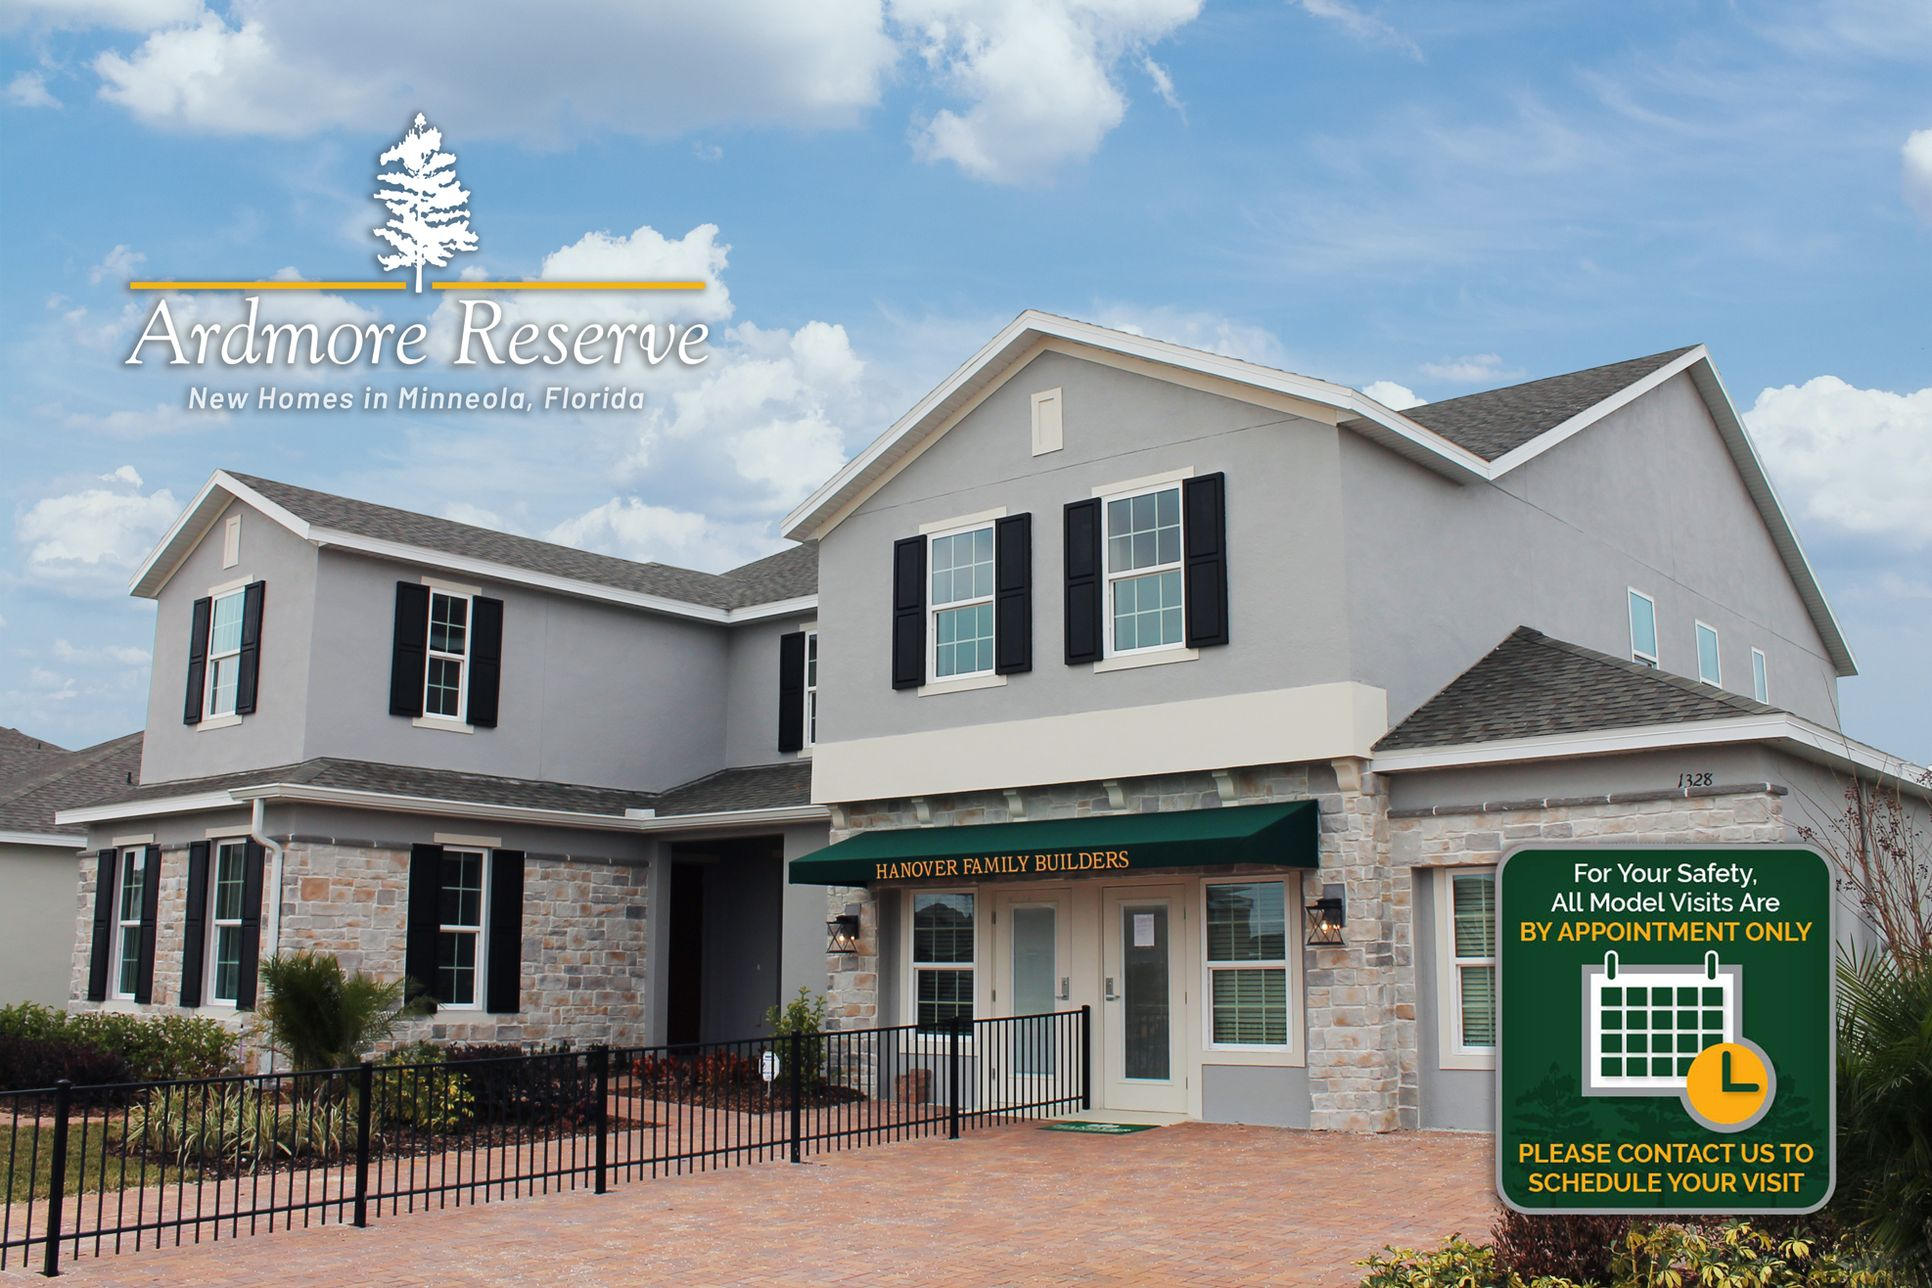 Ardmore Reserve - New Homes in Minneola, Florida:Open by Appointment Only